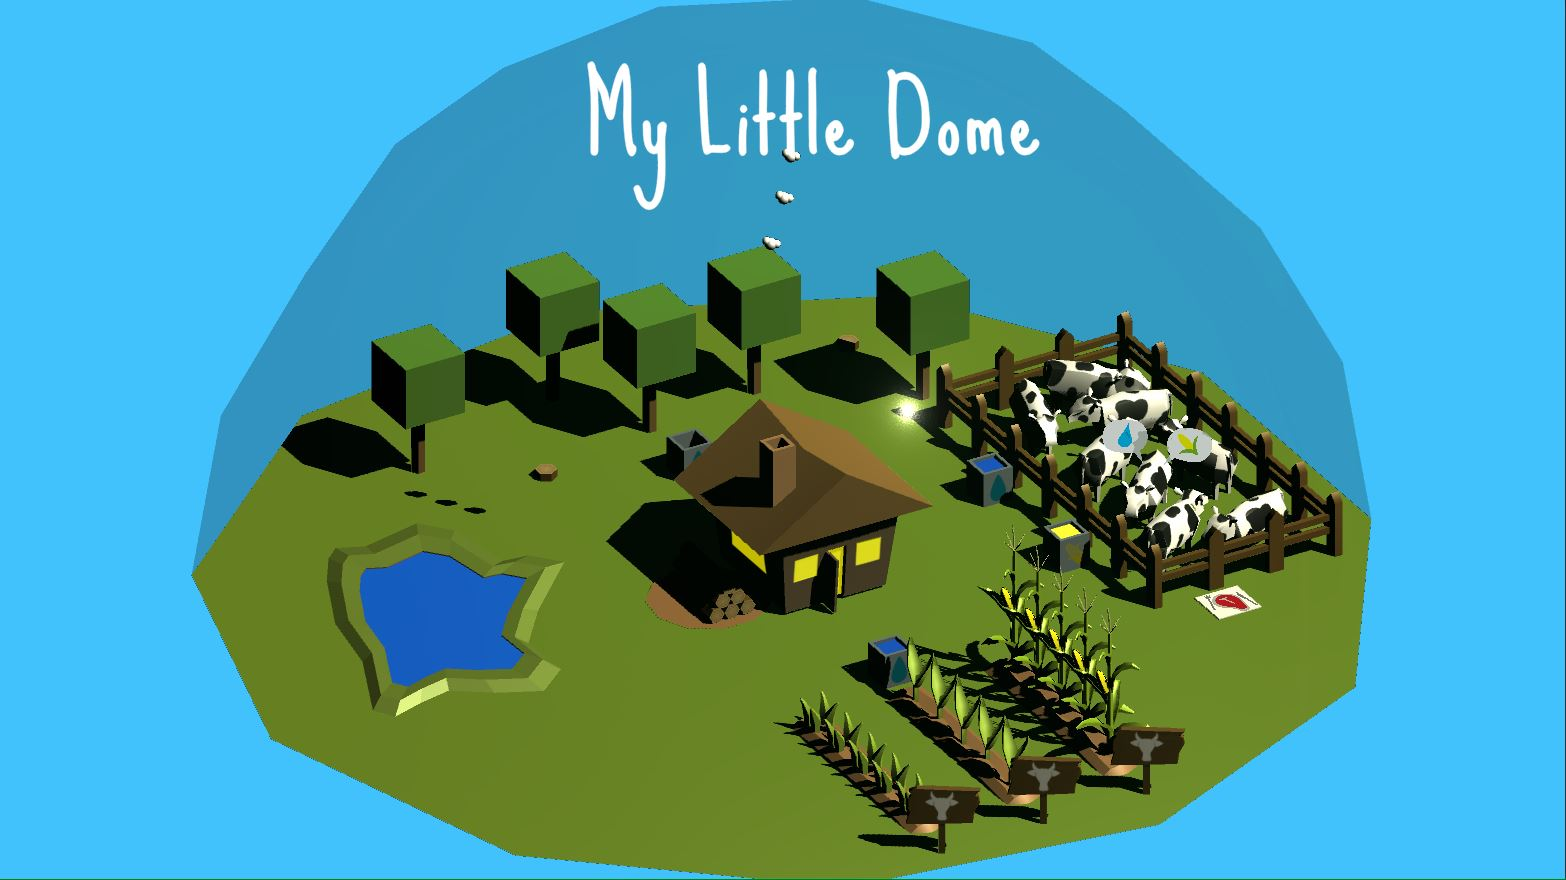 My Little Dome